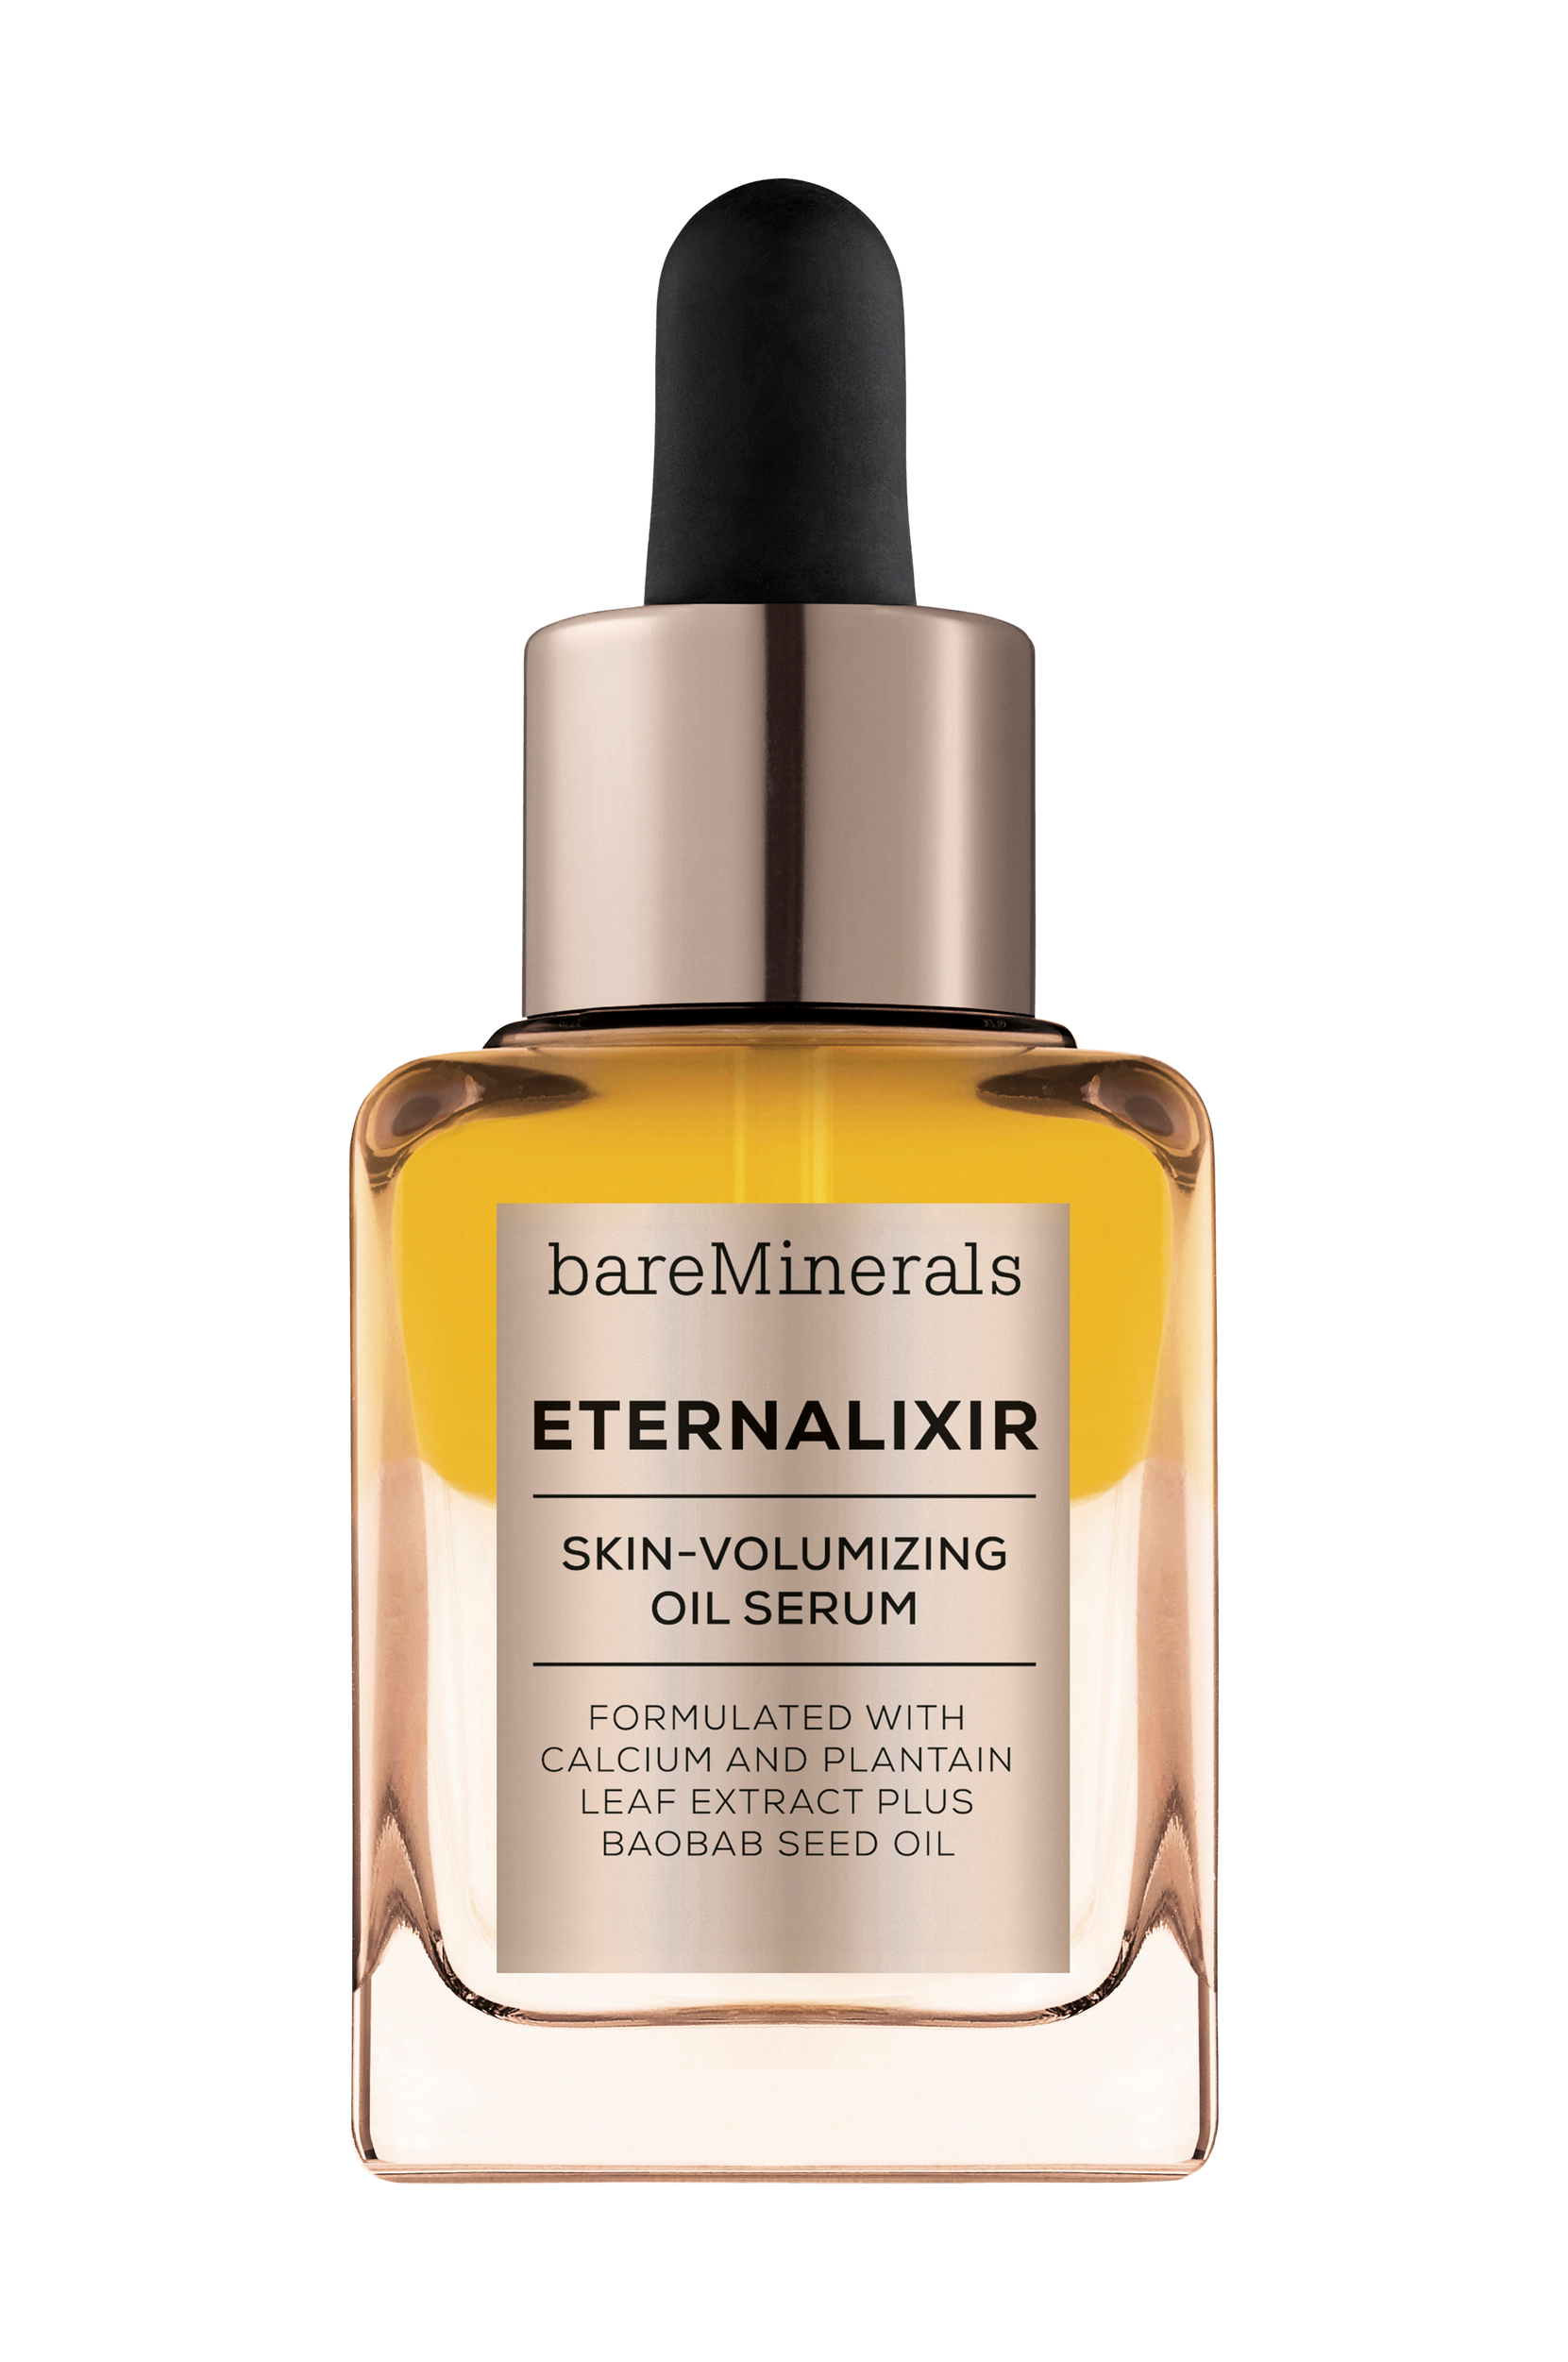 Correctives Eternalixir Skin-Volumizing Oil Serum 30ml